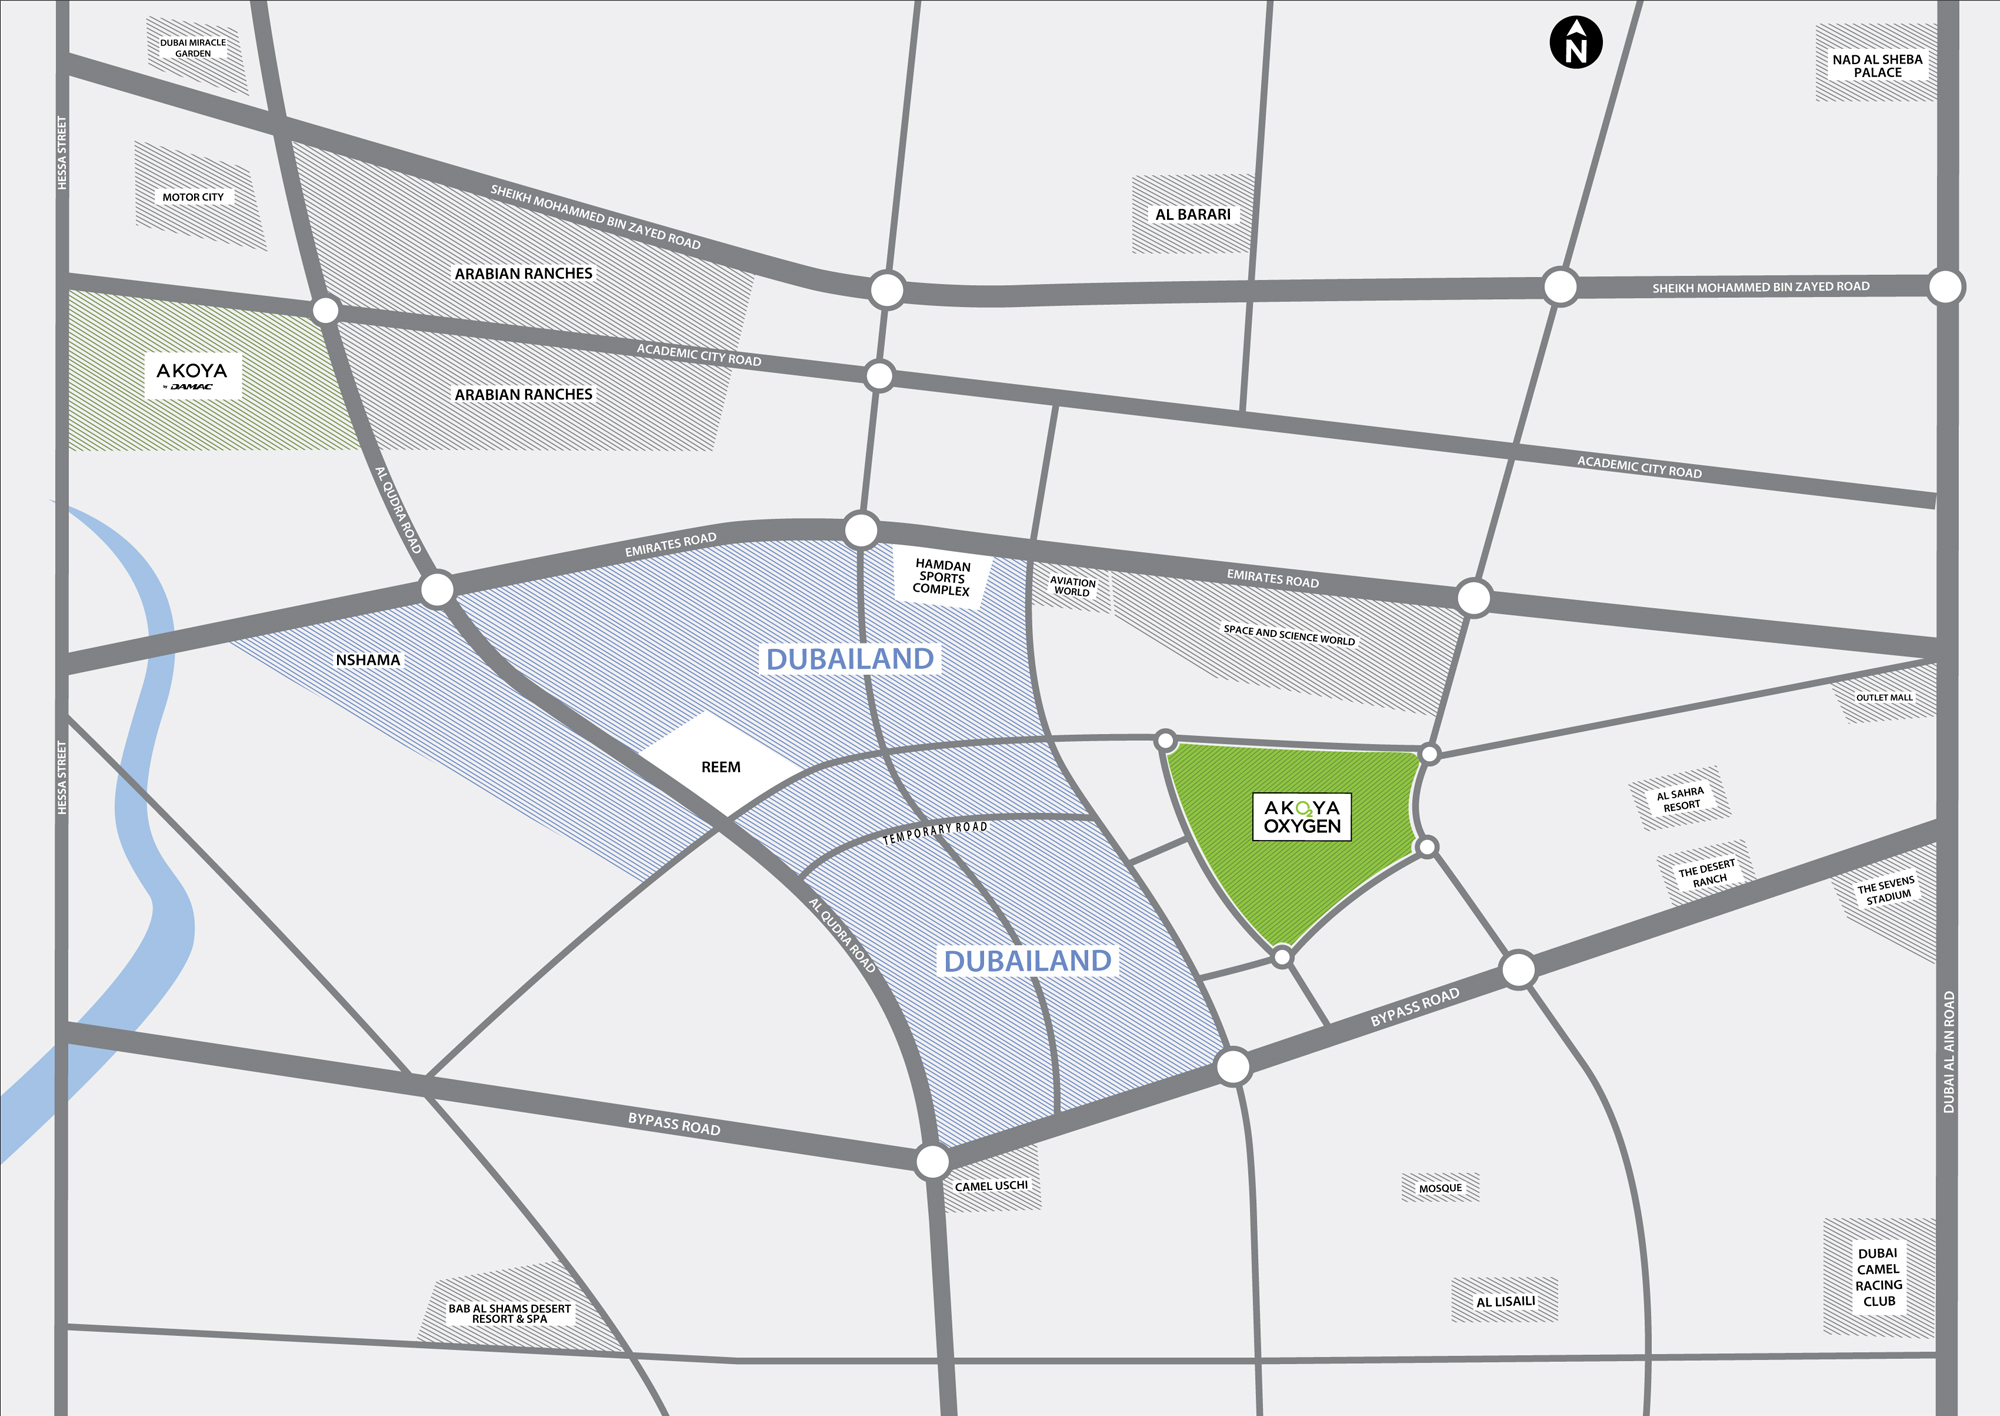 Damac-Akoya-Imagine-Villas Location Map